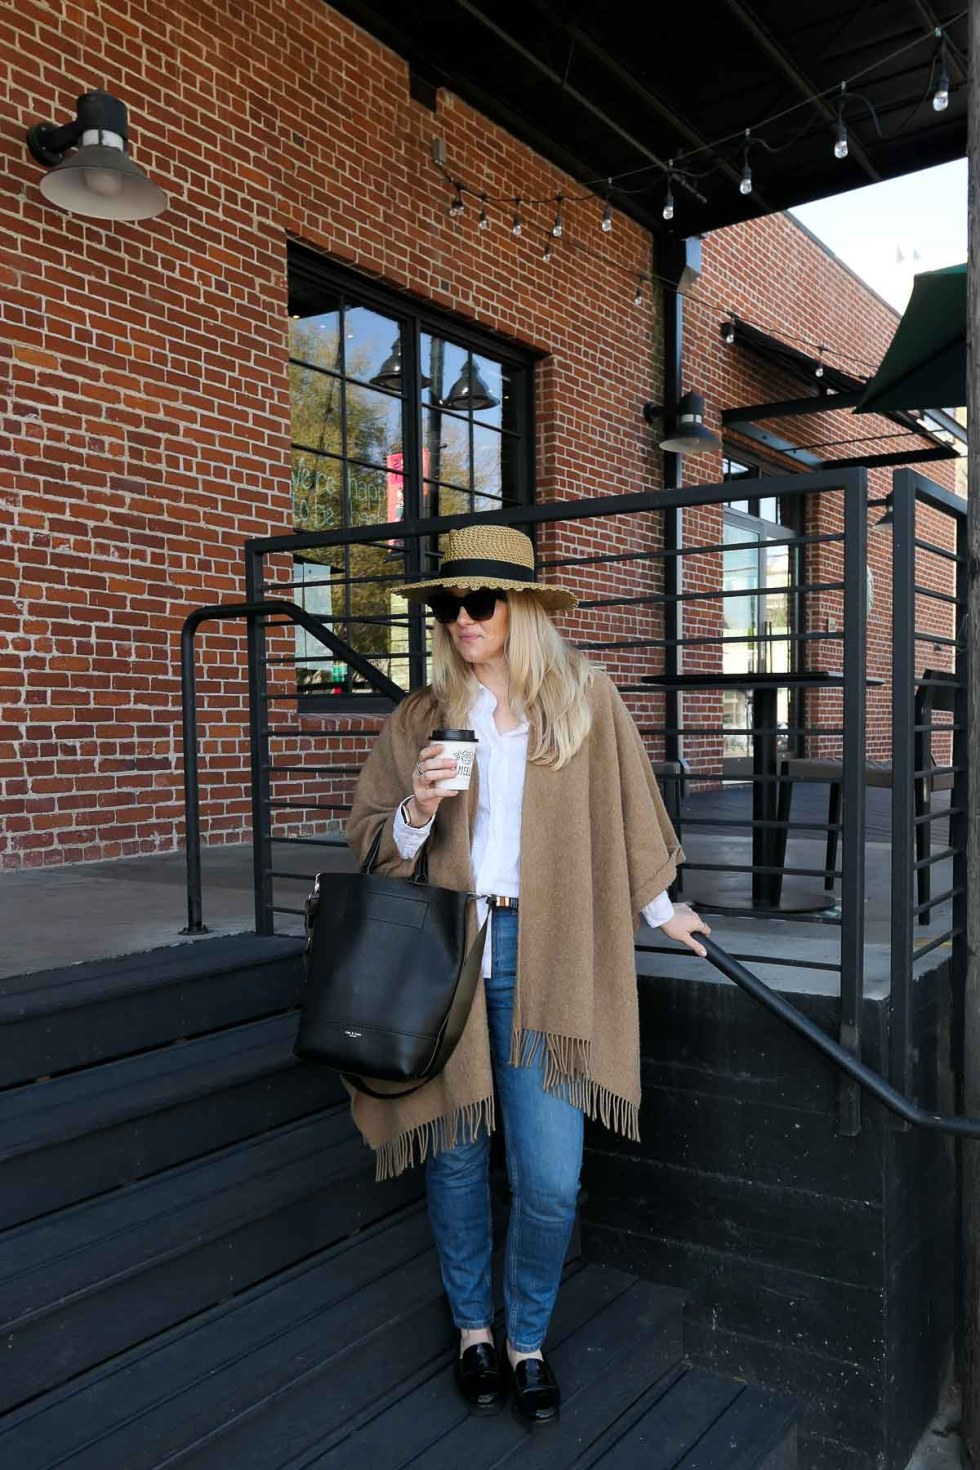 Investing in Quality Clothes - Jeans, Tan Poncho, Straw Hat Outfit for Late Winter